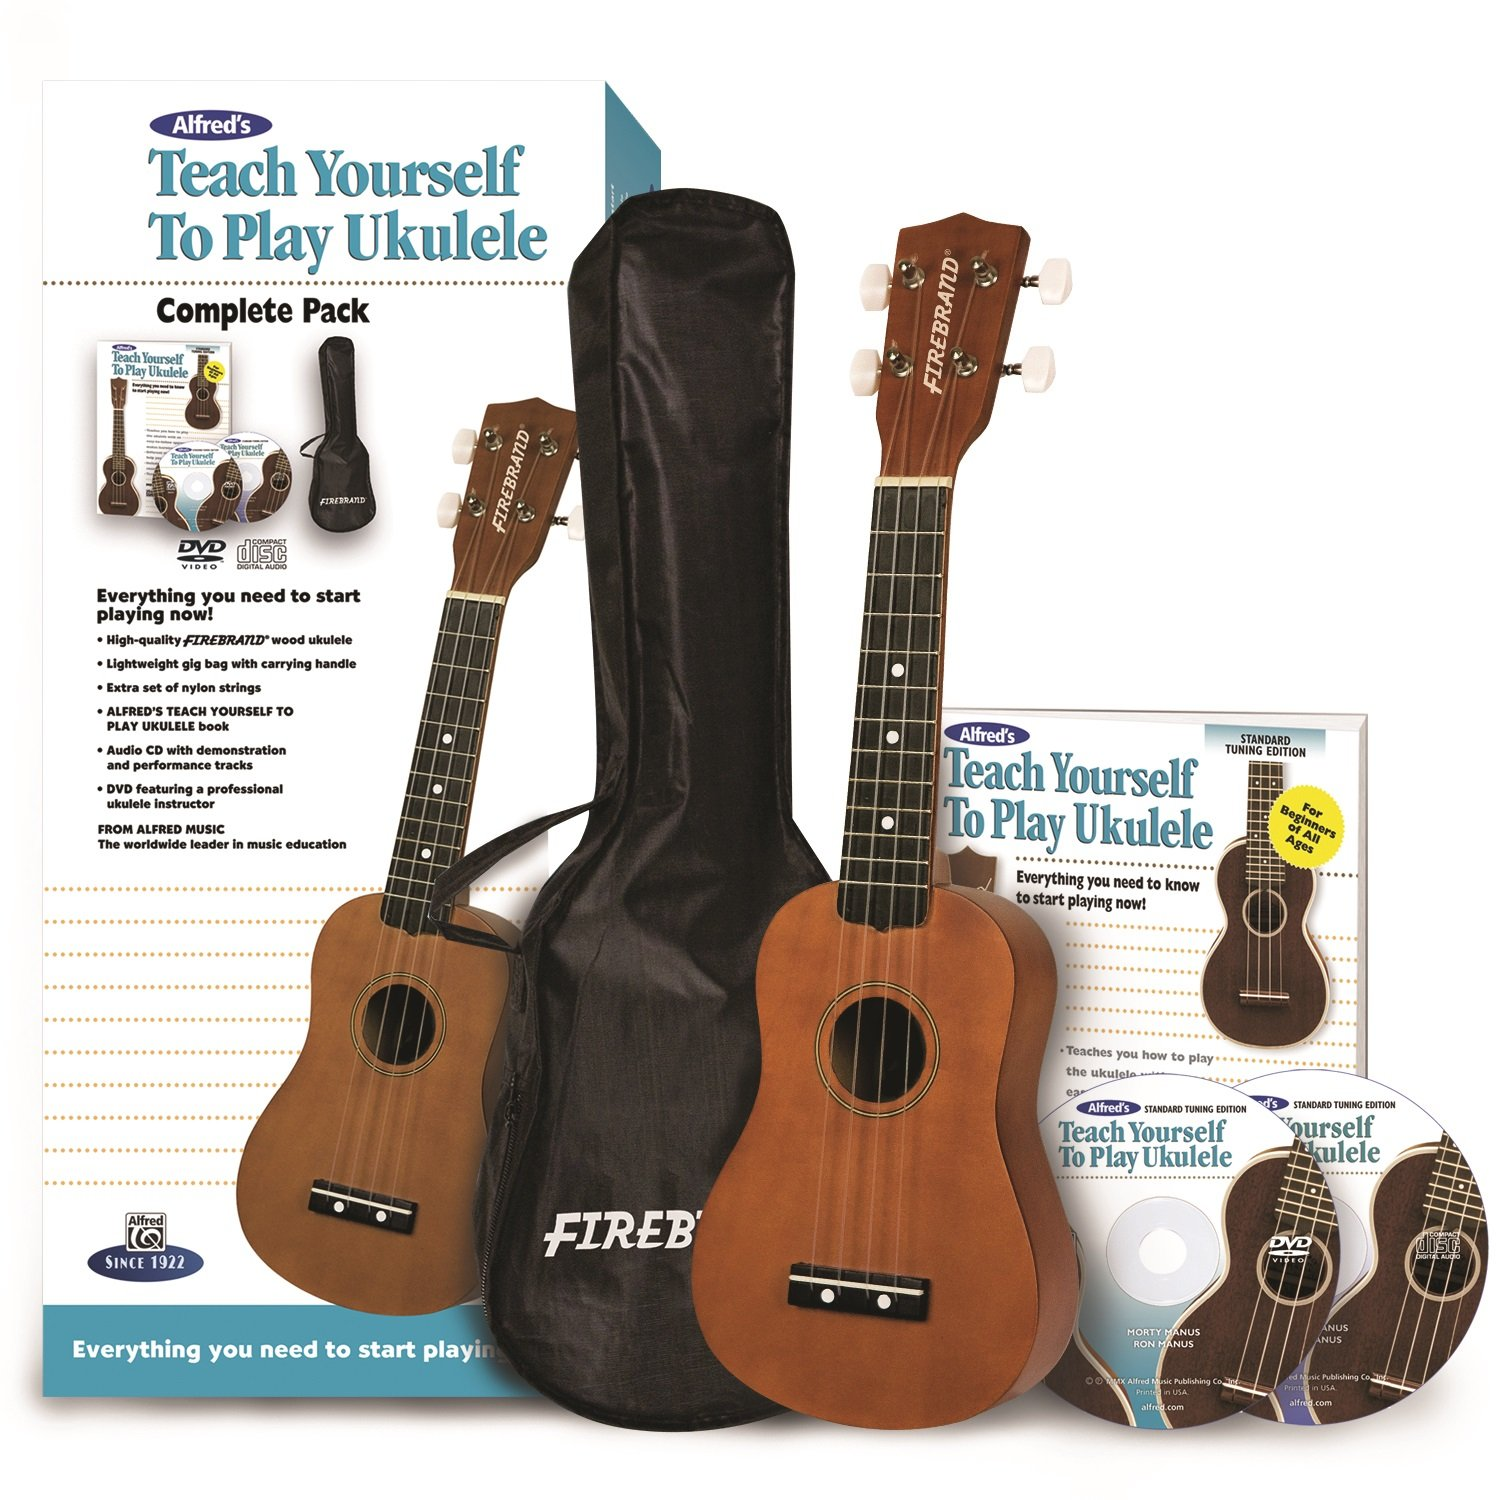 Alfred Music Publishing Teach Yourself to Play Ukulele, Complete Starter Pack Morton Manus Ron Manus 00-37379 Musical Instruments - Guitar